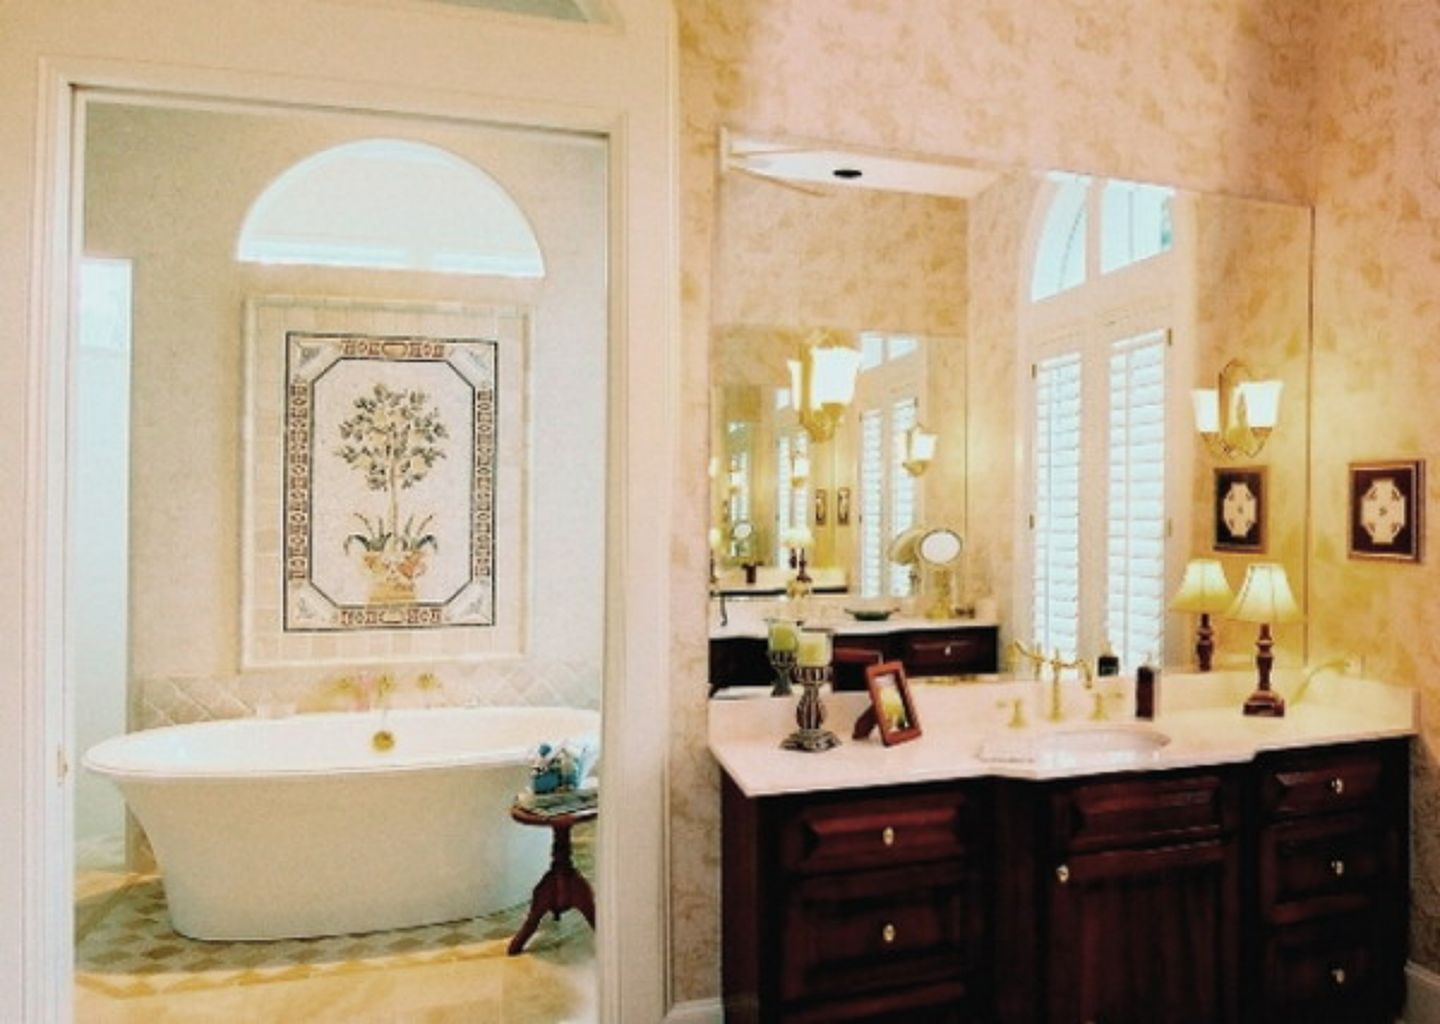 20 Beautiful Bathroom Wall Decor Ideas For